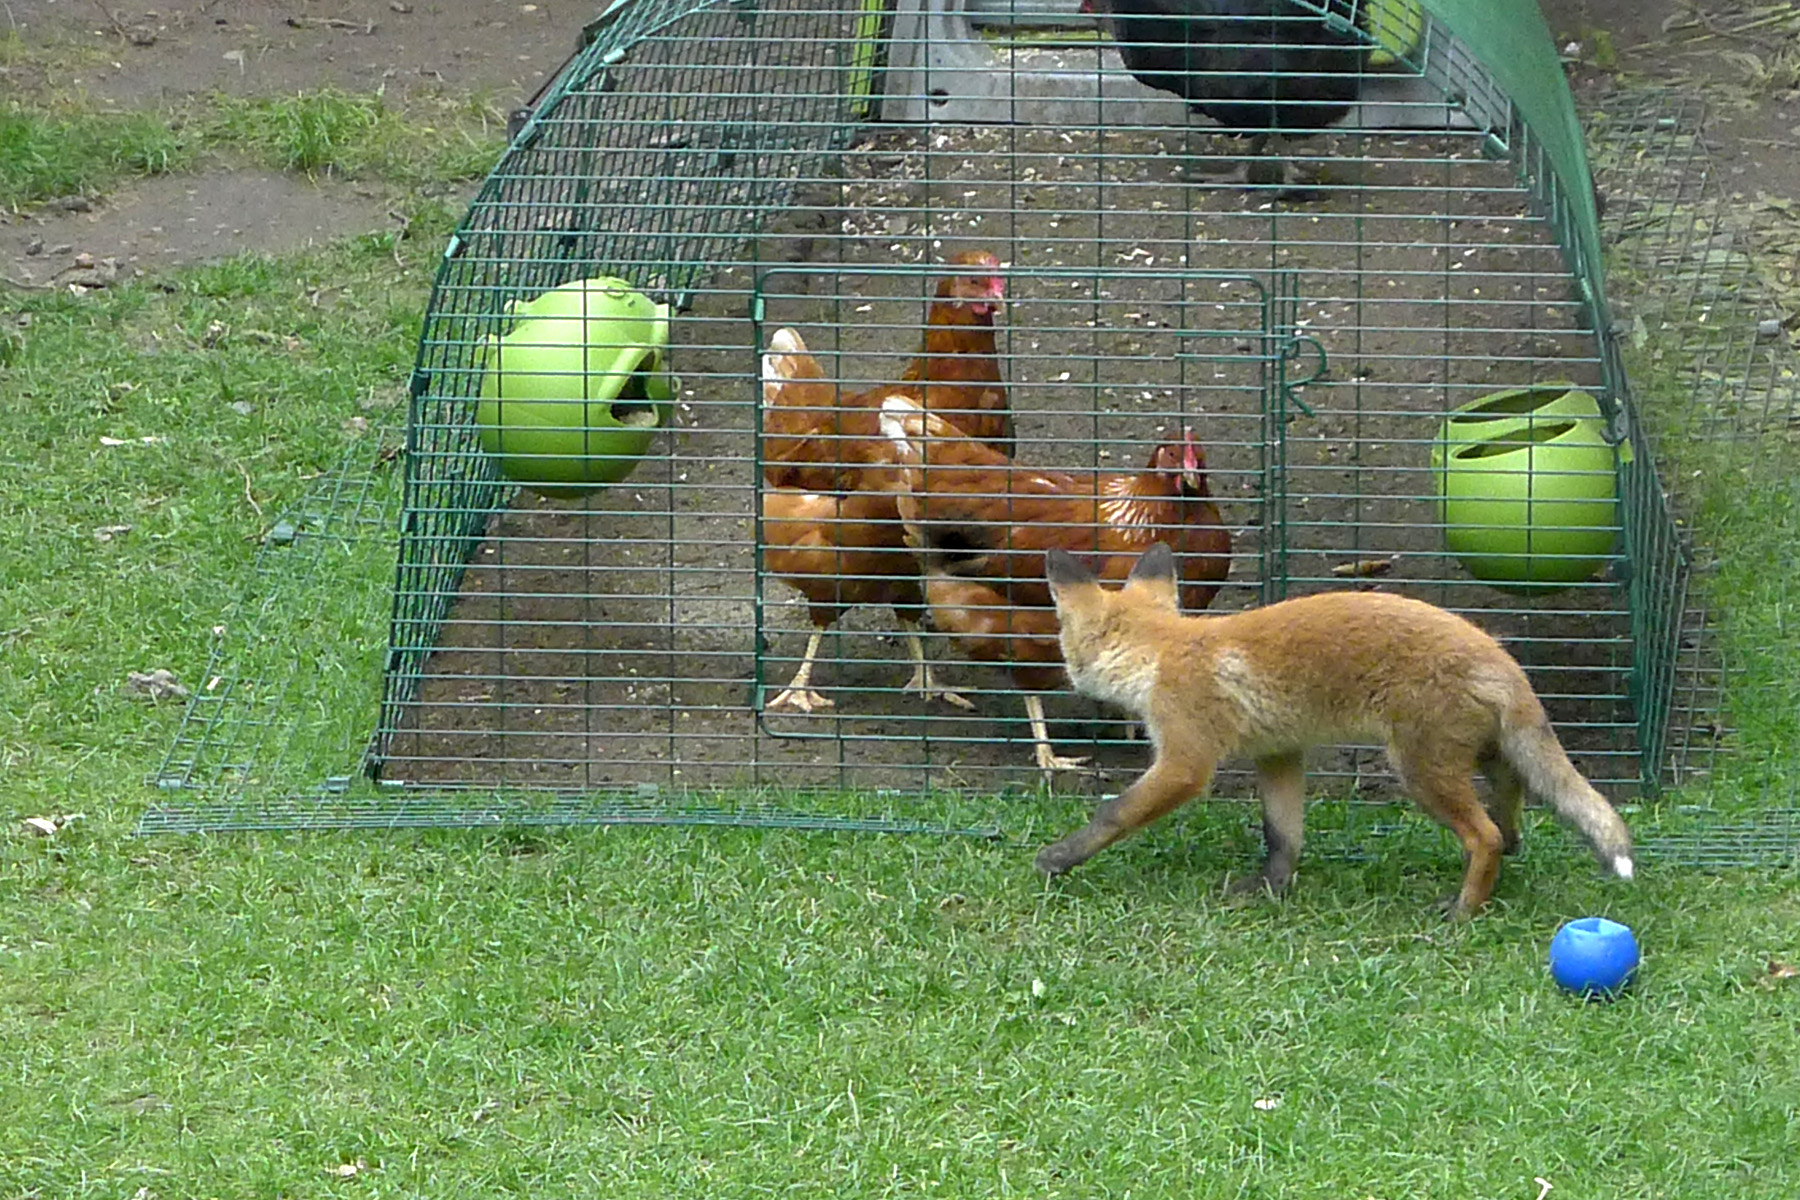 Lisa Thomas' Eglu Classic and Run keeps her chickens safe and foxes at bay